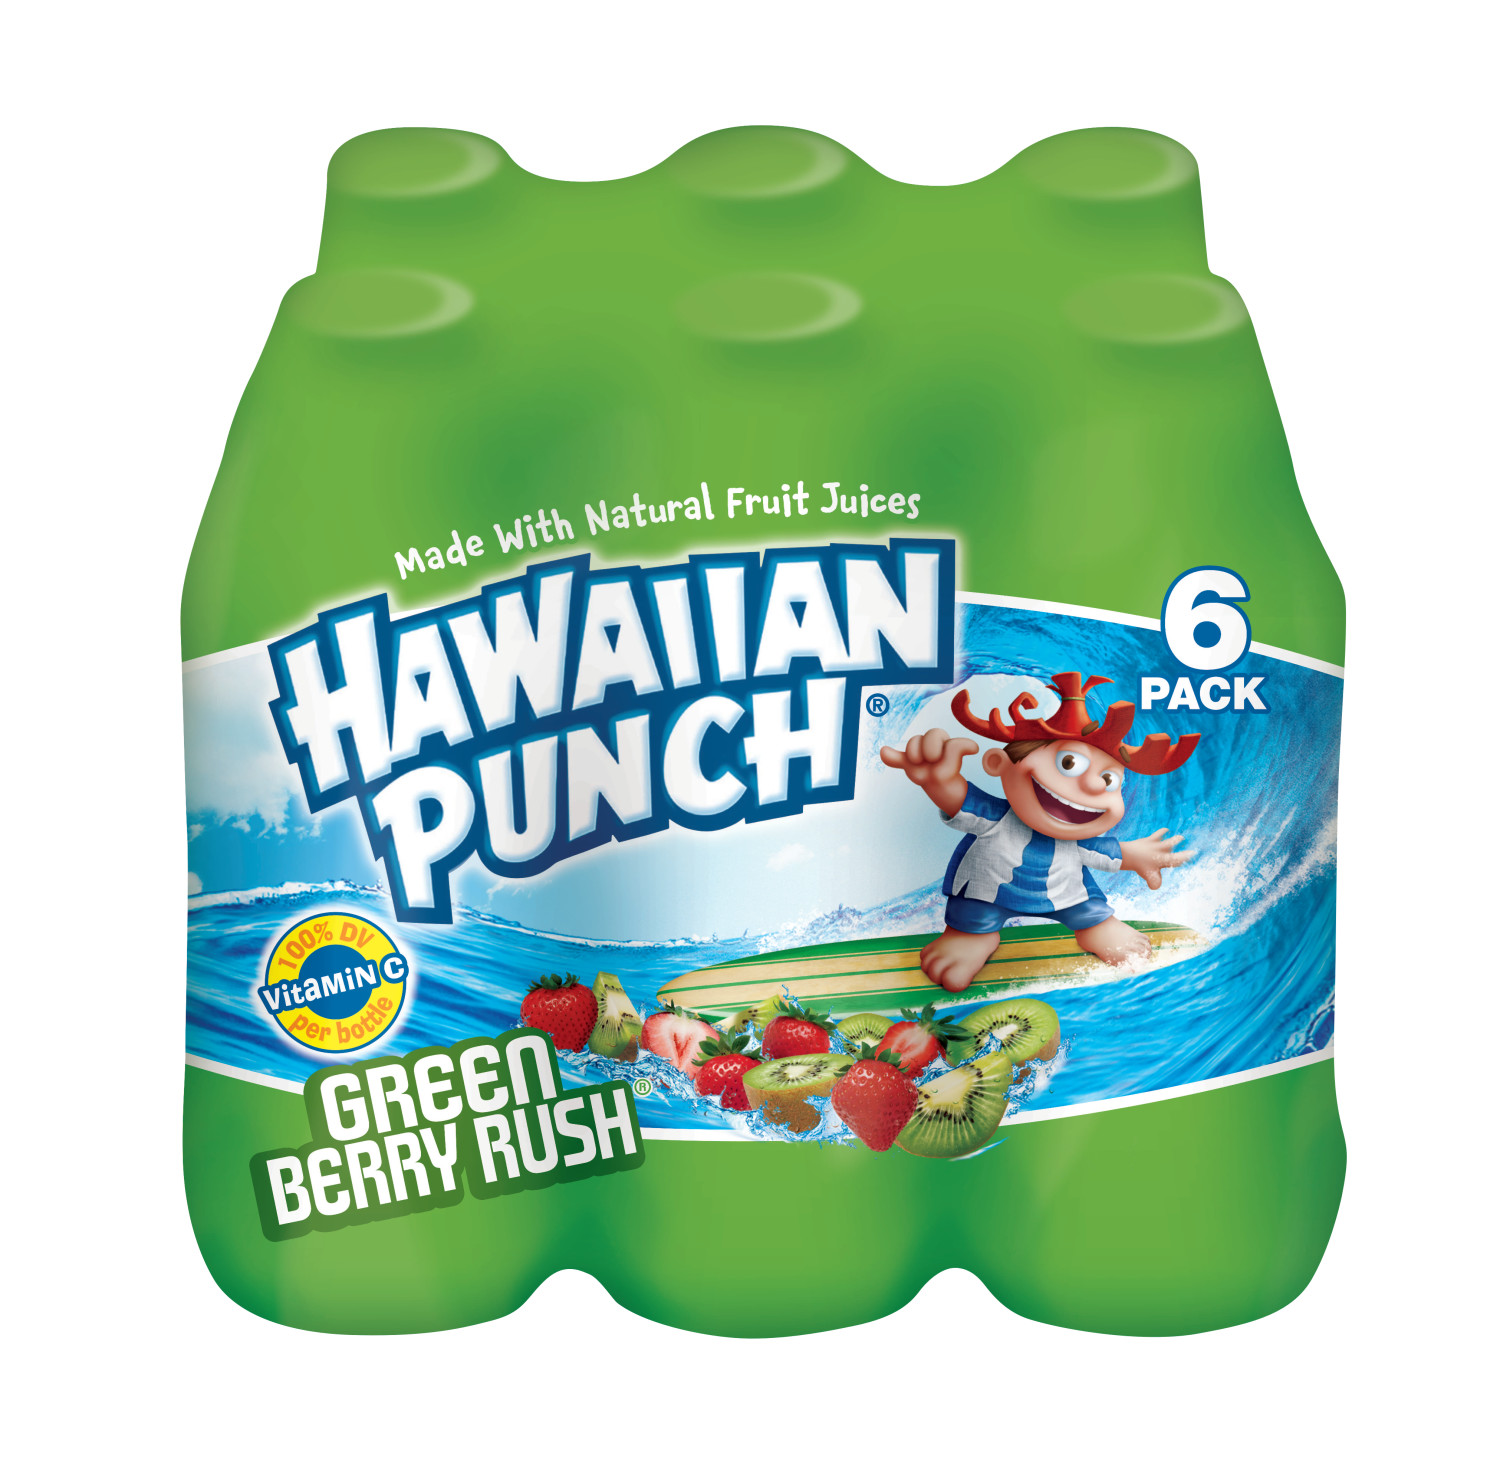 Hawaiian Punch Green Berry Rush Drink, 10 Fl. Oz., 6 Count